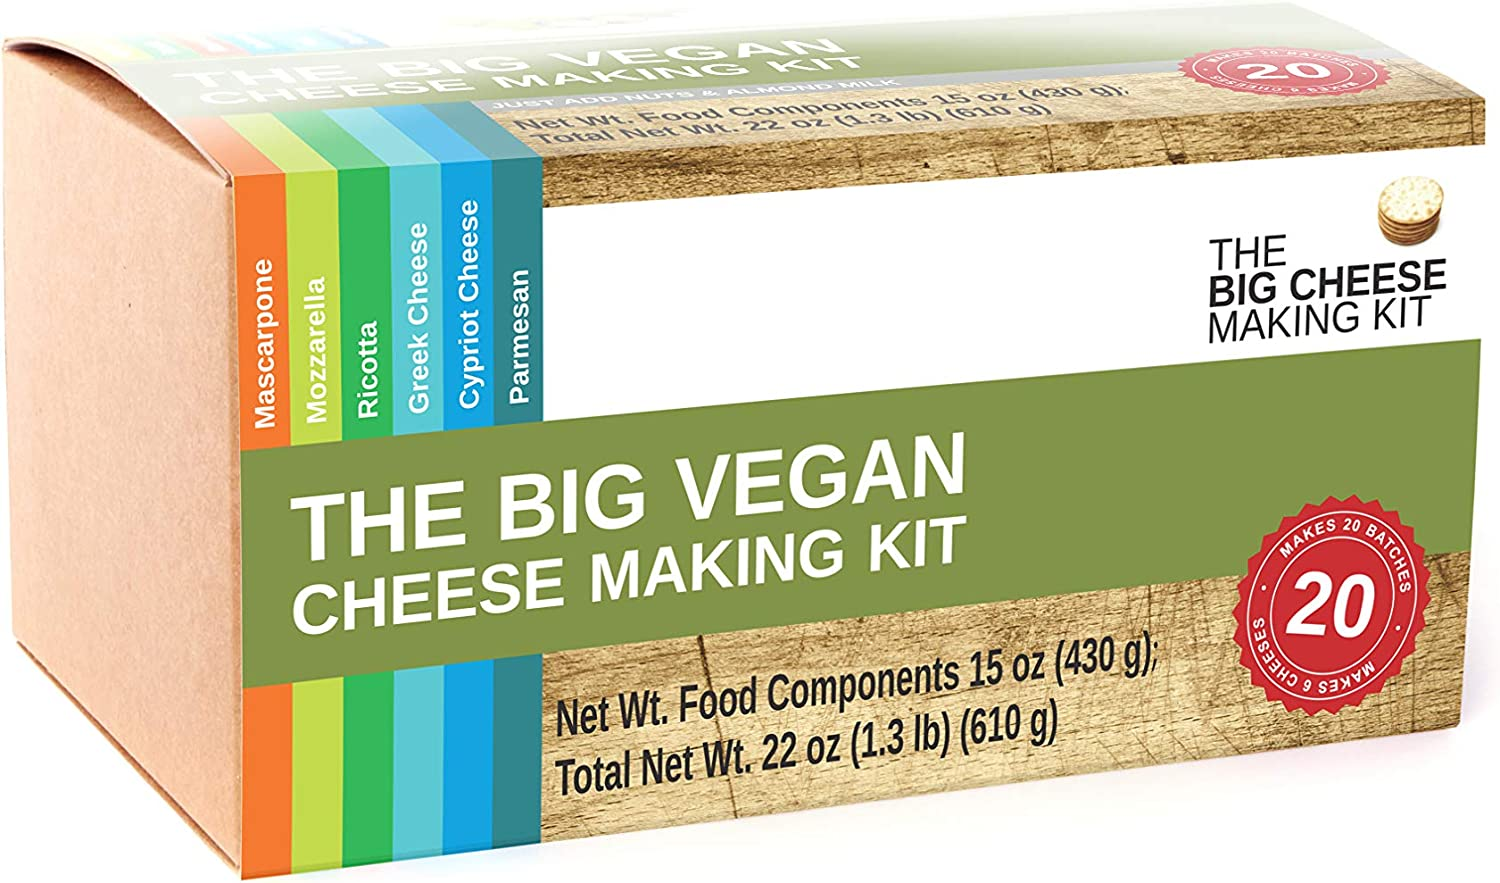 The Big Vegan Cheese Making Kit - Make 6 Dairy Free Cheeses in Around an Hour. It's The Perfect Plant Based Gift.